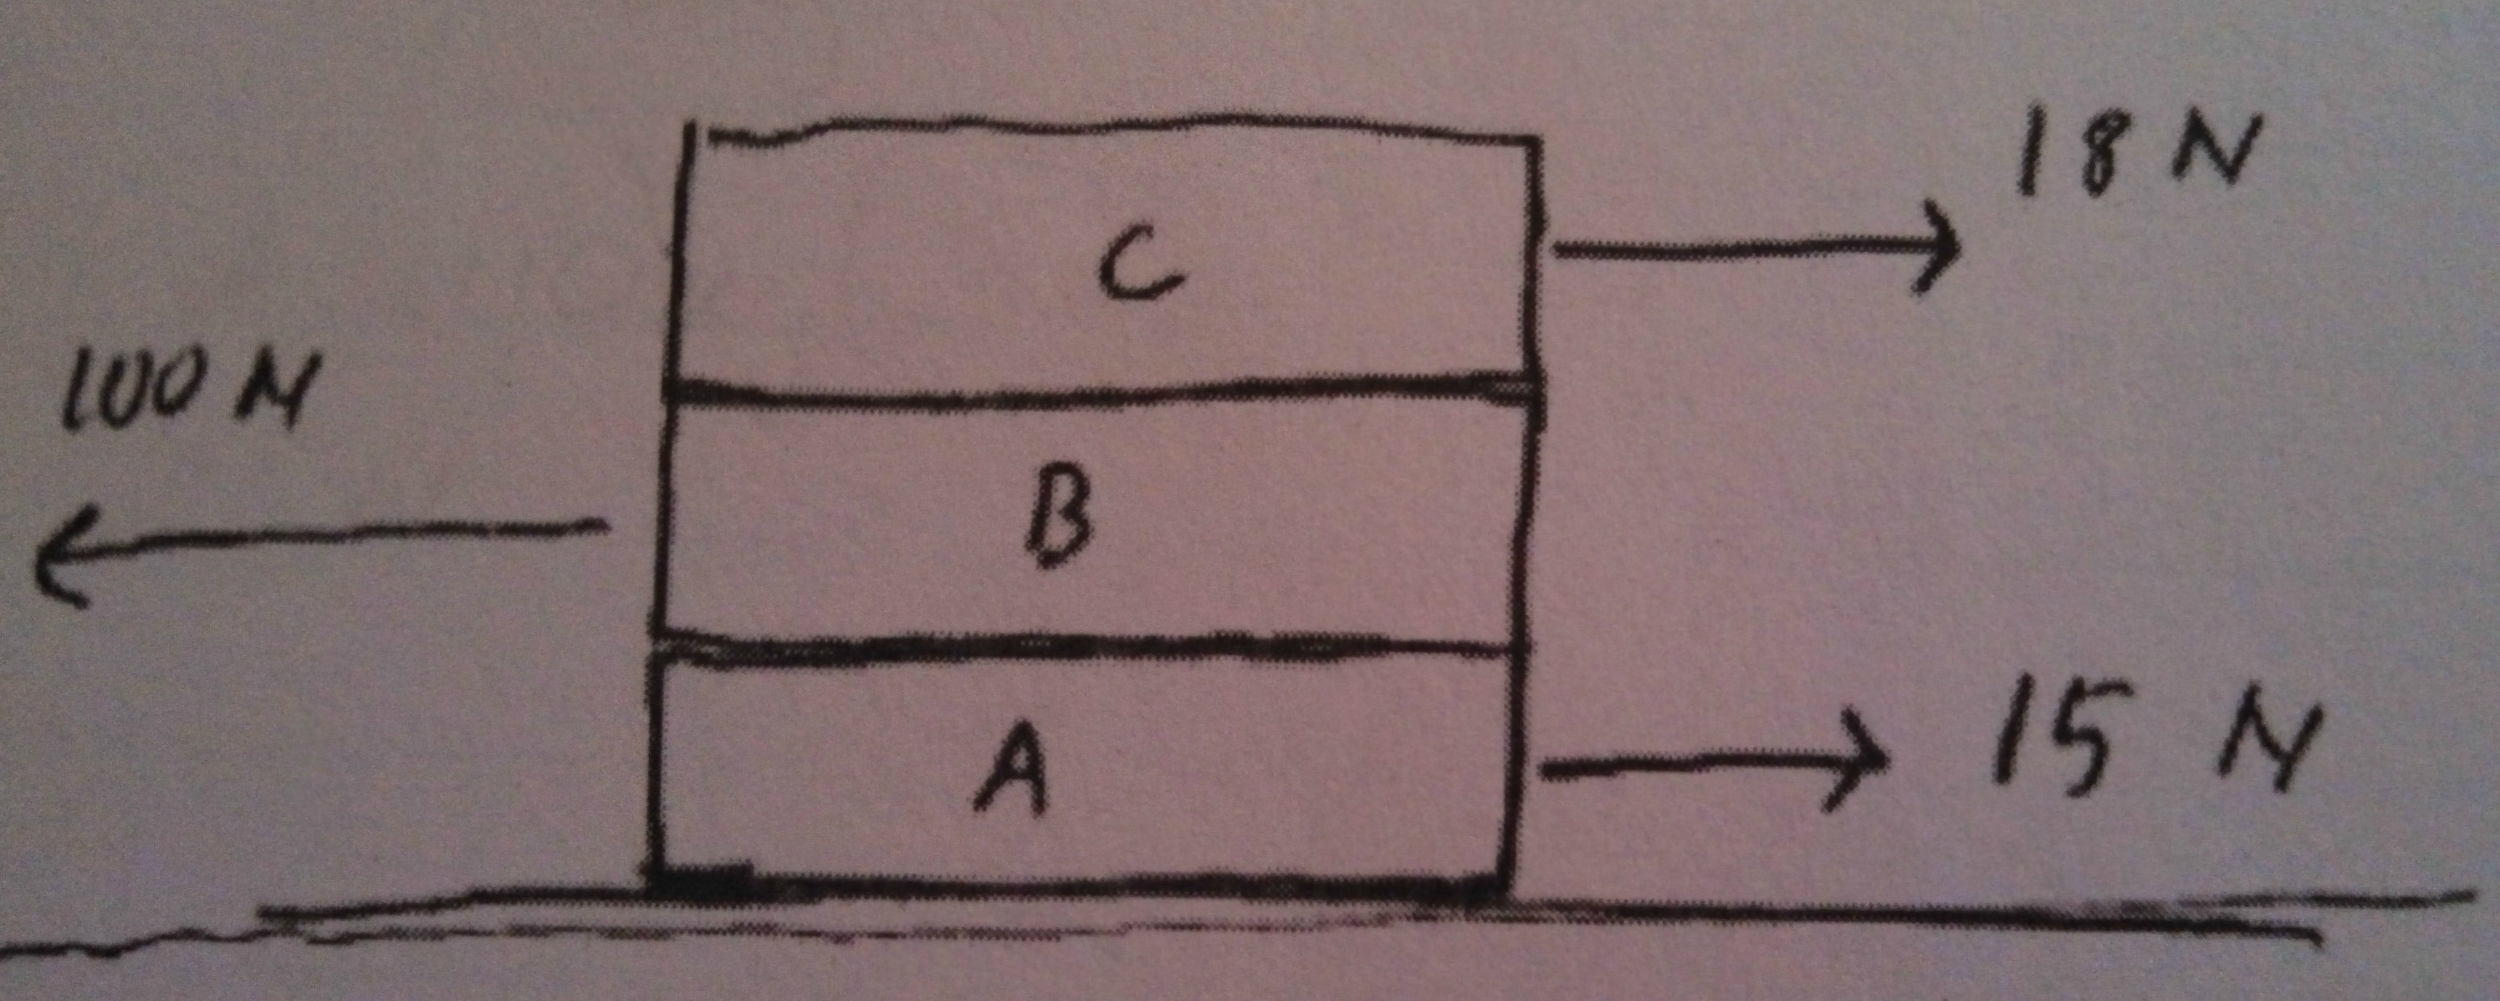 Each of the plates A, B, and C shown have a mass o